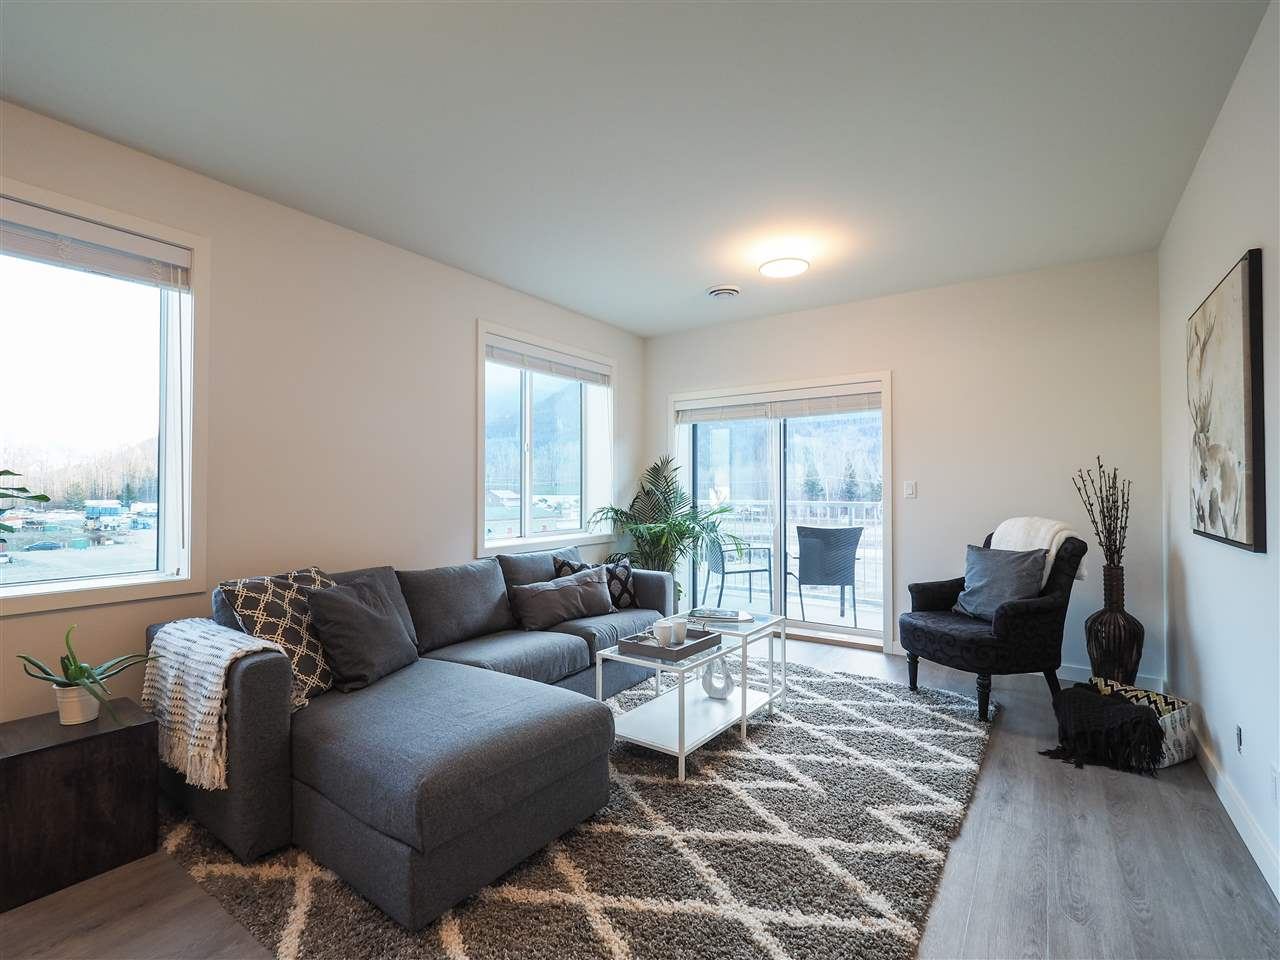 201 7322 OLD MILL ROAD - Pemberton Apartment/Condo for sale, 2 Bedrooms (R2431256)